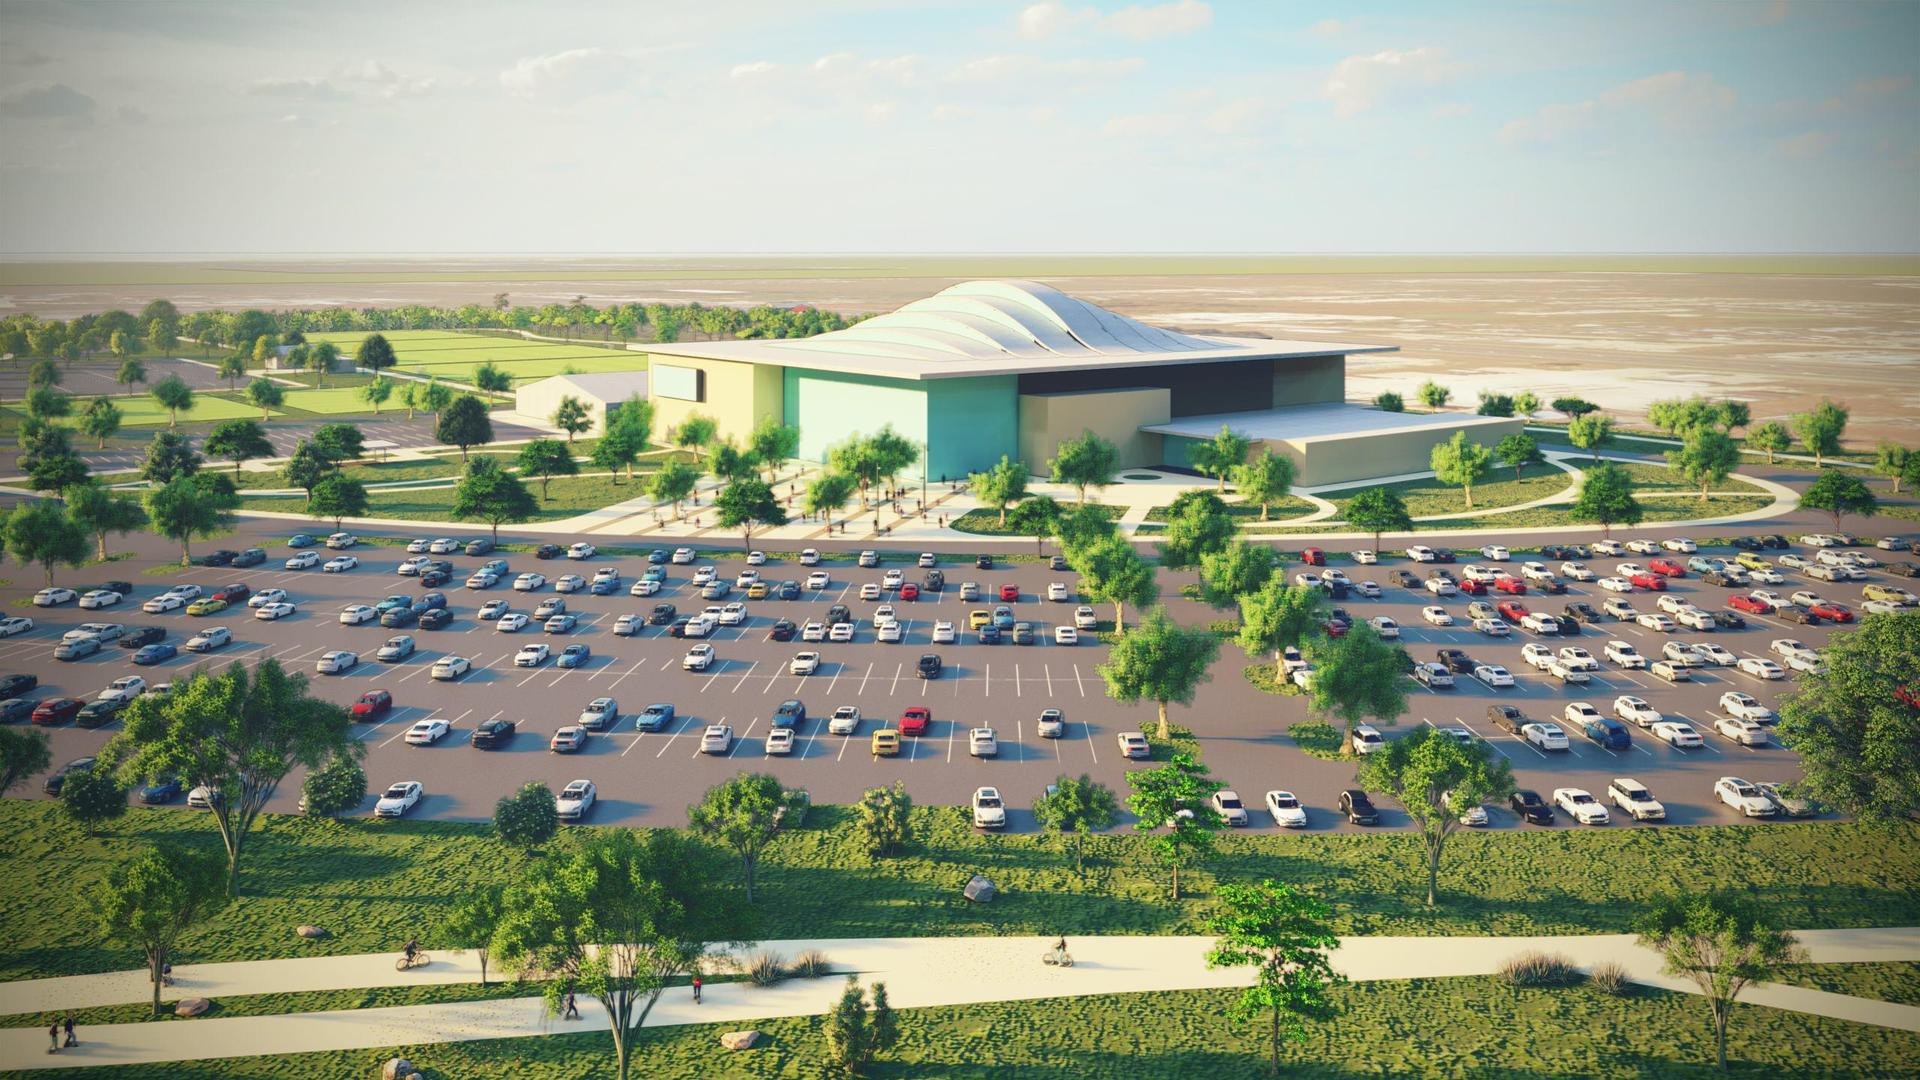 rendering of event center